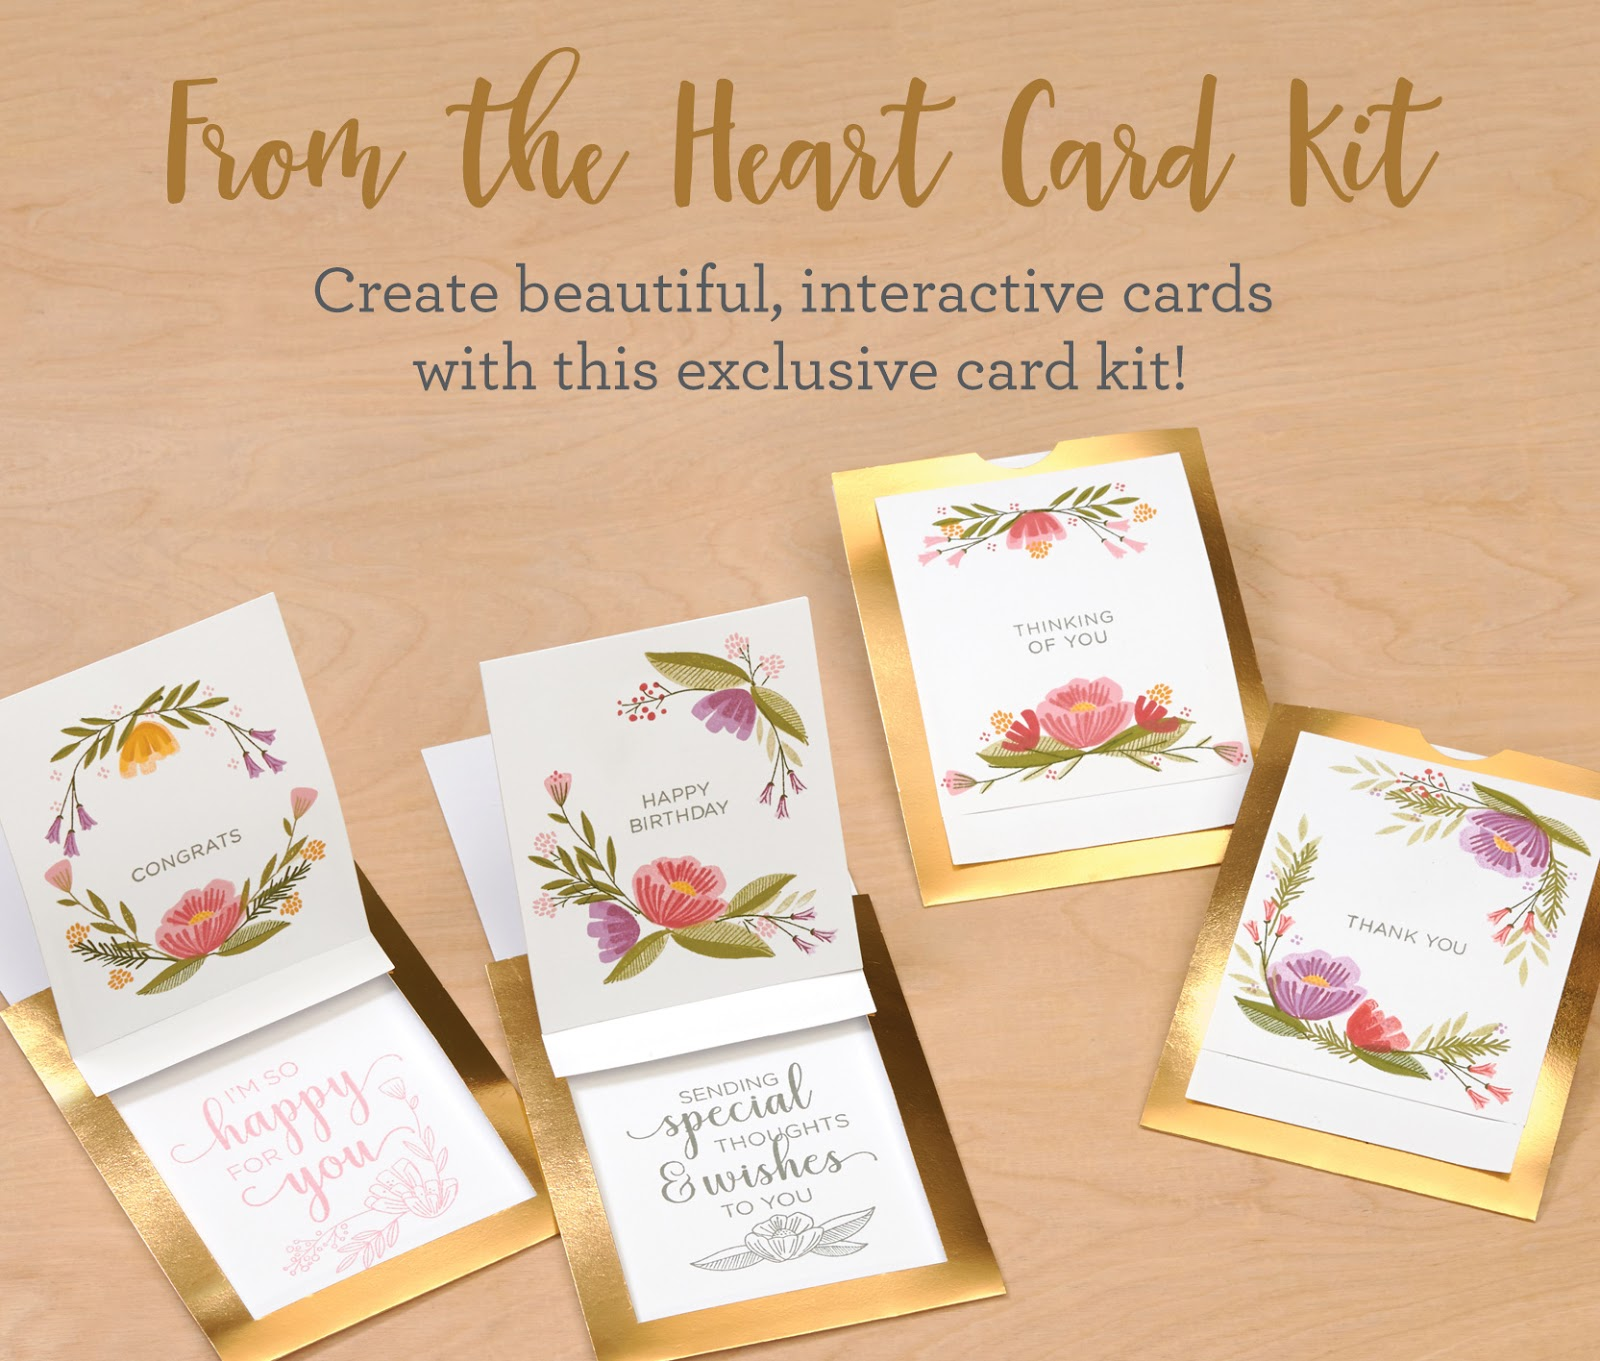 For National Stamping Month, Close To My Heart Has Released The Exclusive  From The Heart Card Kit, Which Contains A Double Stamp Set As Well As  Materials ...